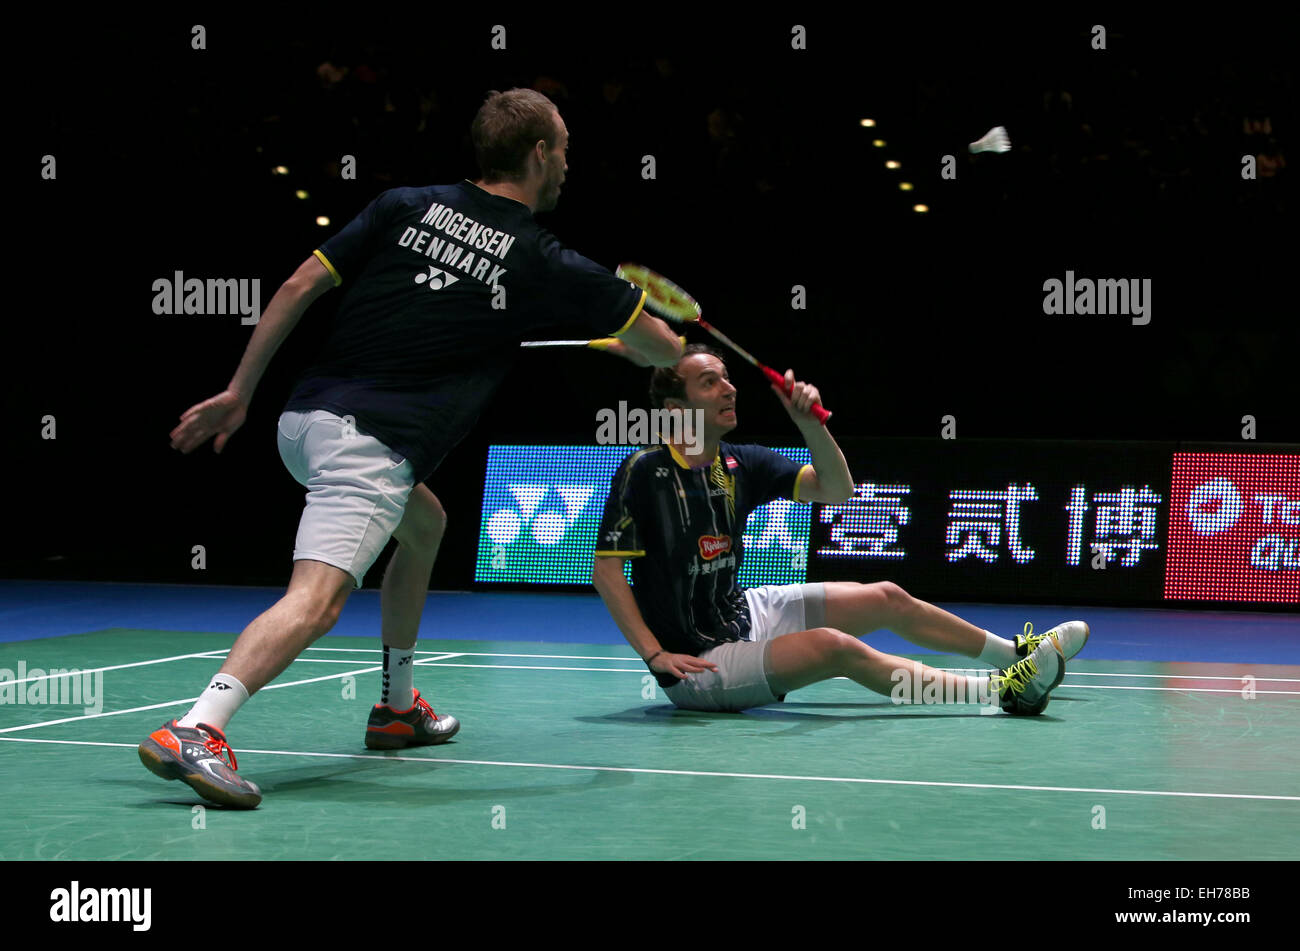 Birmingham Britain 8th Mar 2015 Mathias Boe R and Carsten